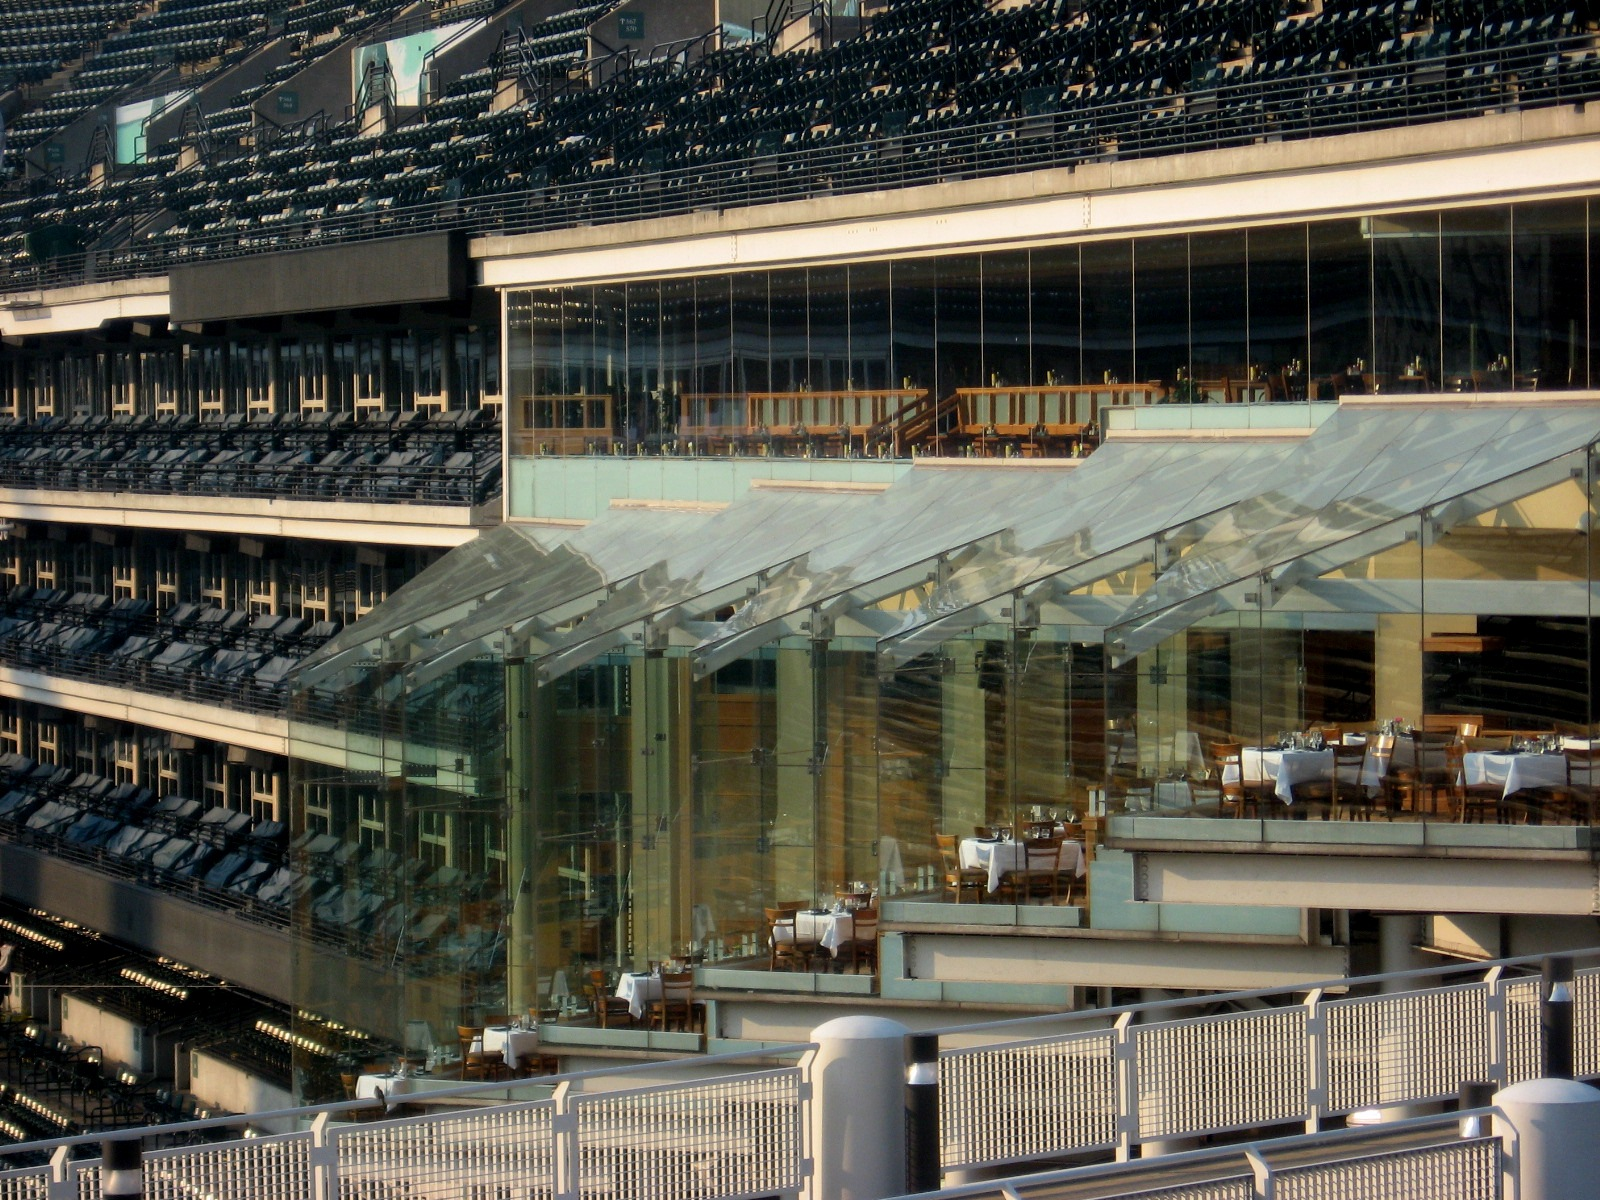 43 2007 08 02 10 Jacobs Field Cleveland.jpg